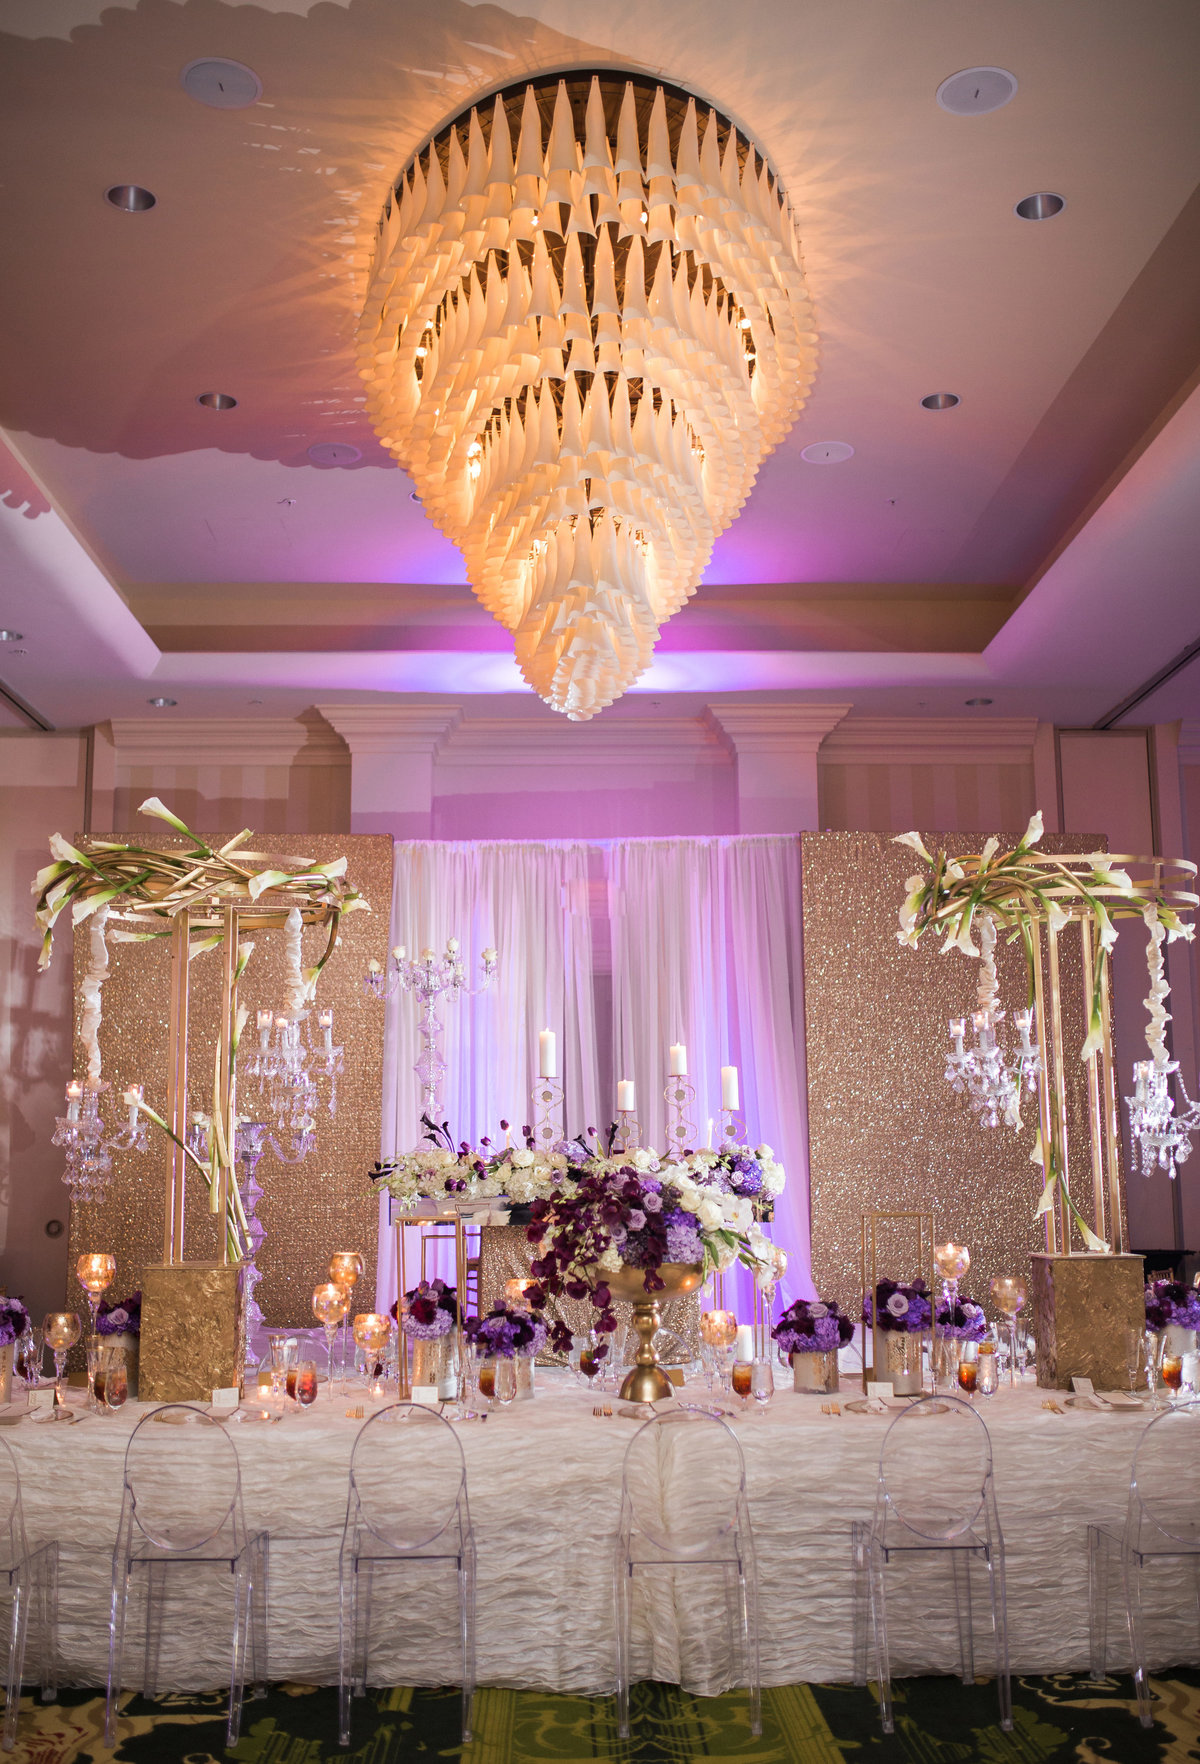 Renaissance hotel wedding in Raleigh, North Carolina-169